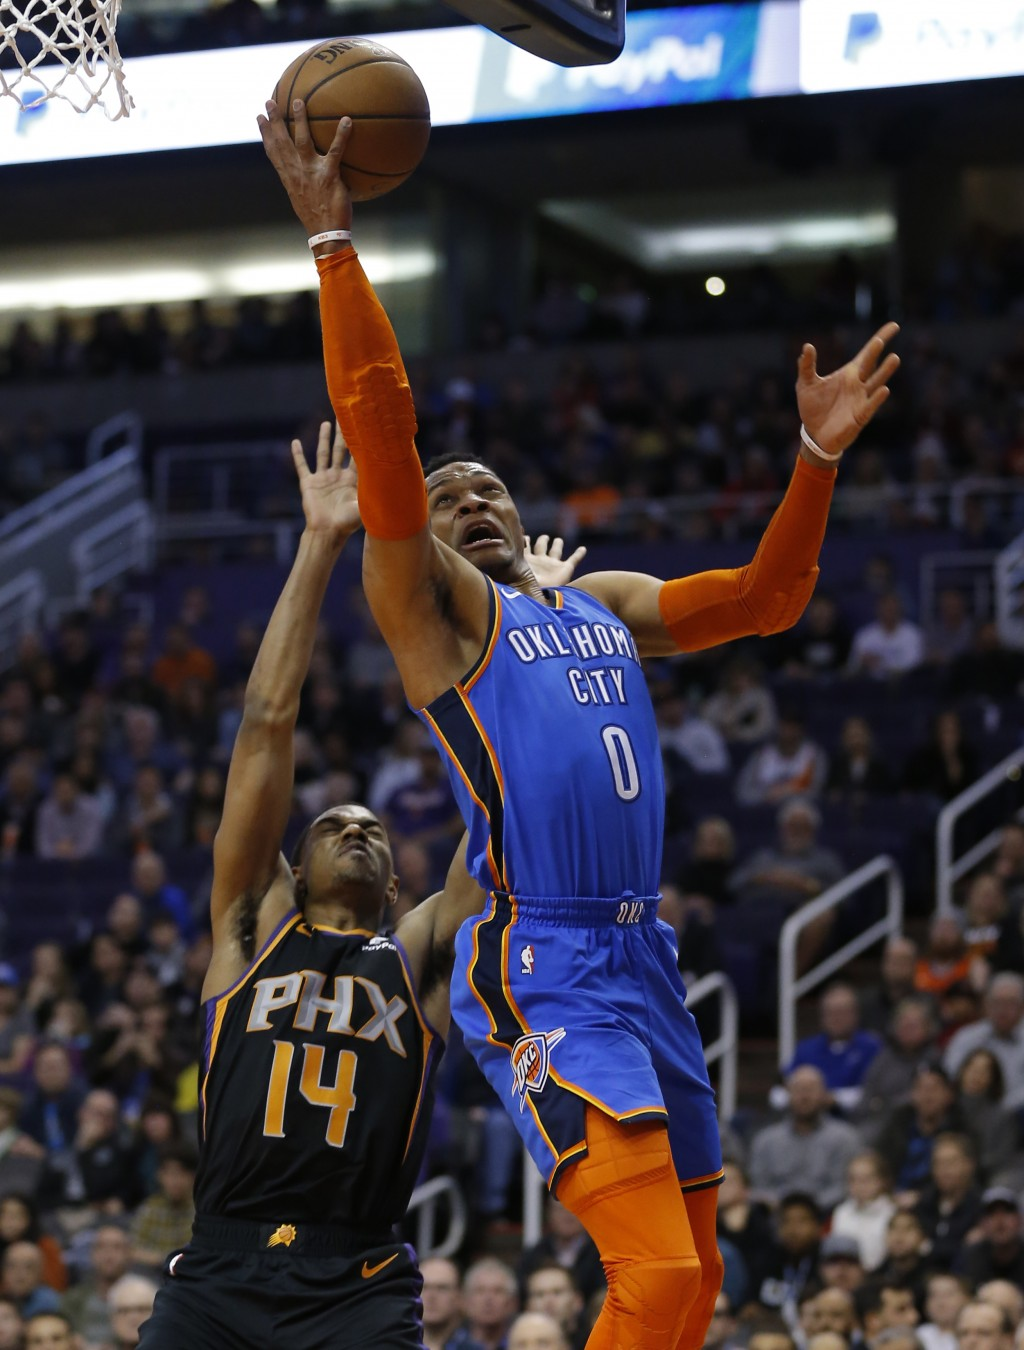 Oklahoma City Thunder guard Russell Westbrook (0) drives past Phoenix Suns guard De'Anthony Melton in the first half during an NBA basketball game, Fr...